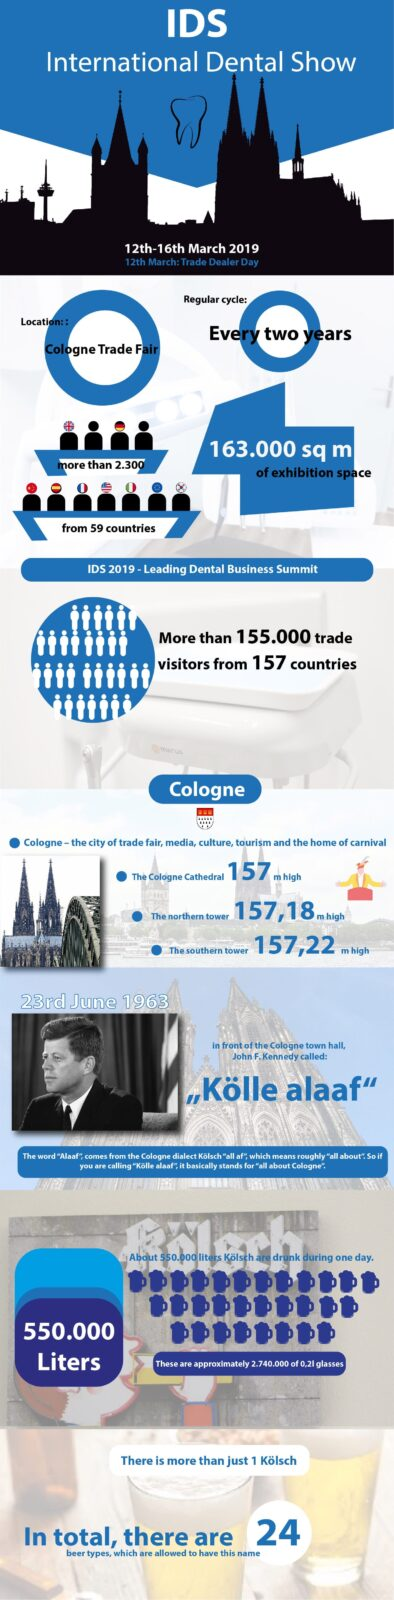 Infographic IDS 2019 Cologne - Infographic for IDS 2019 in Cologne